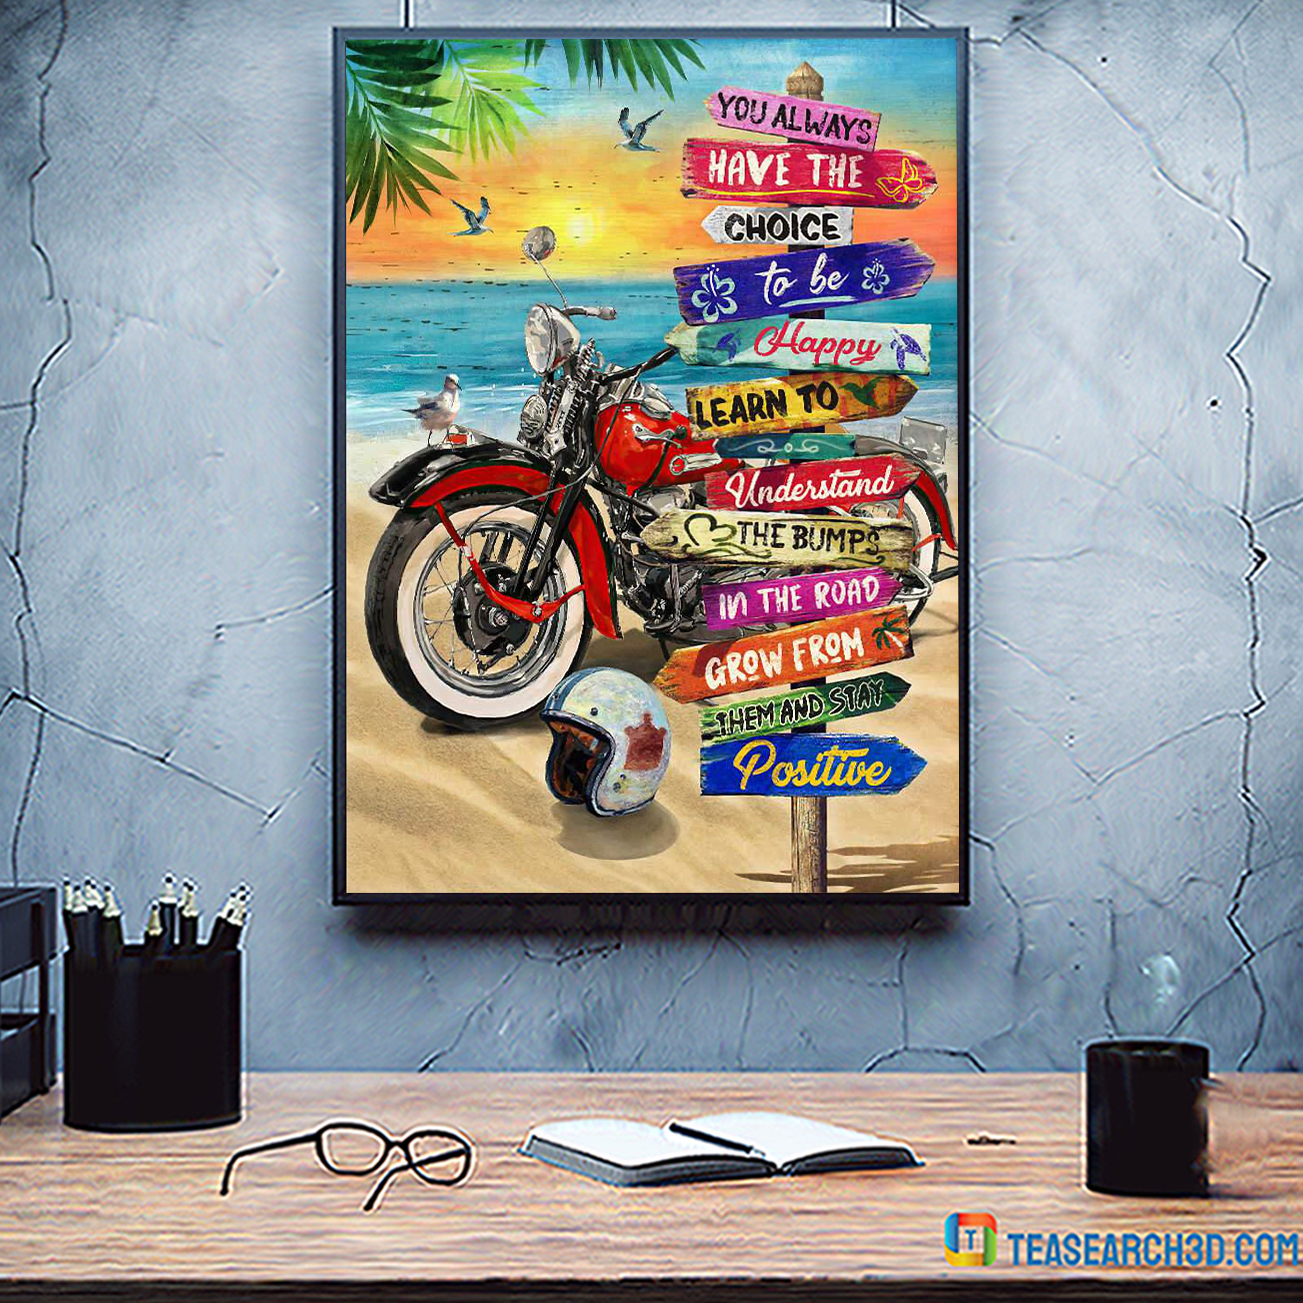 Summer beach harley davidson motorcycle you always have the choice poster A2